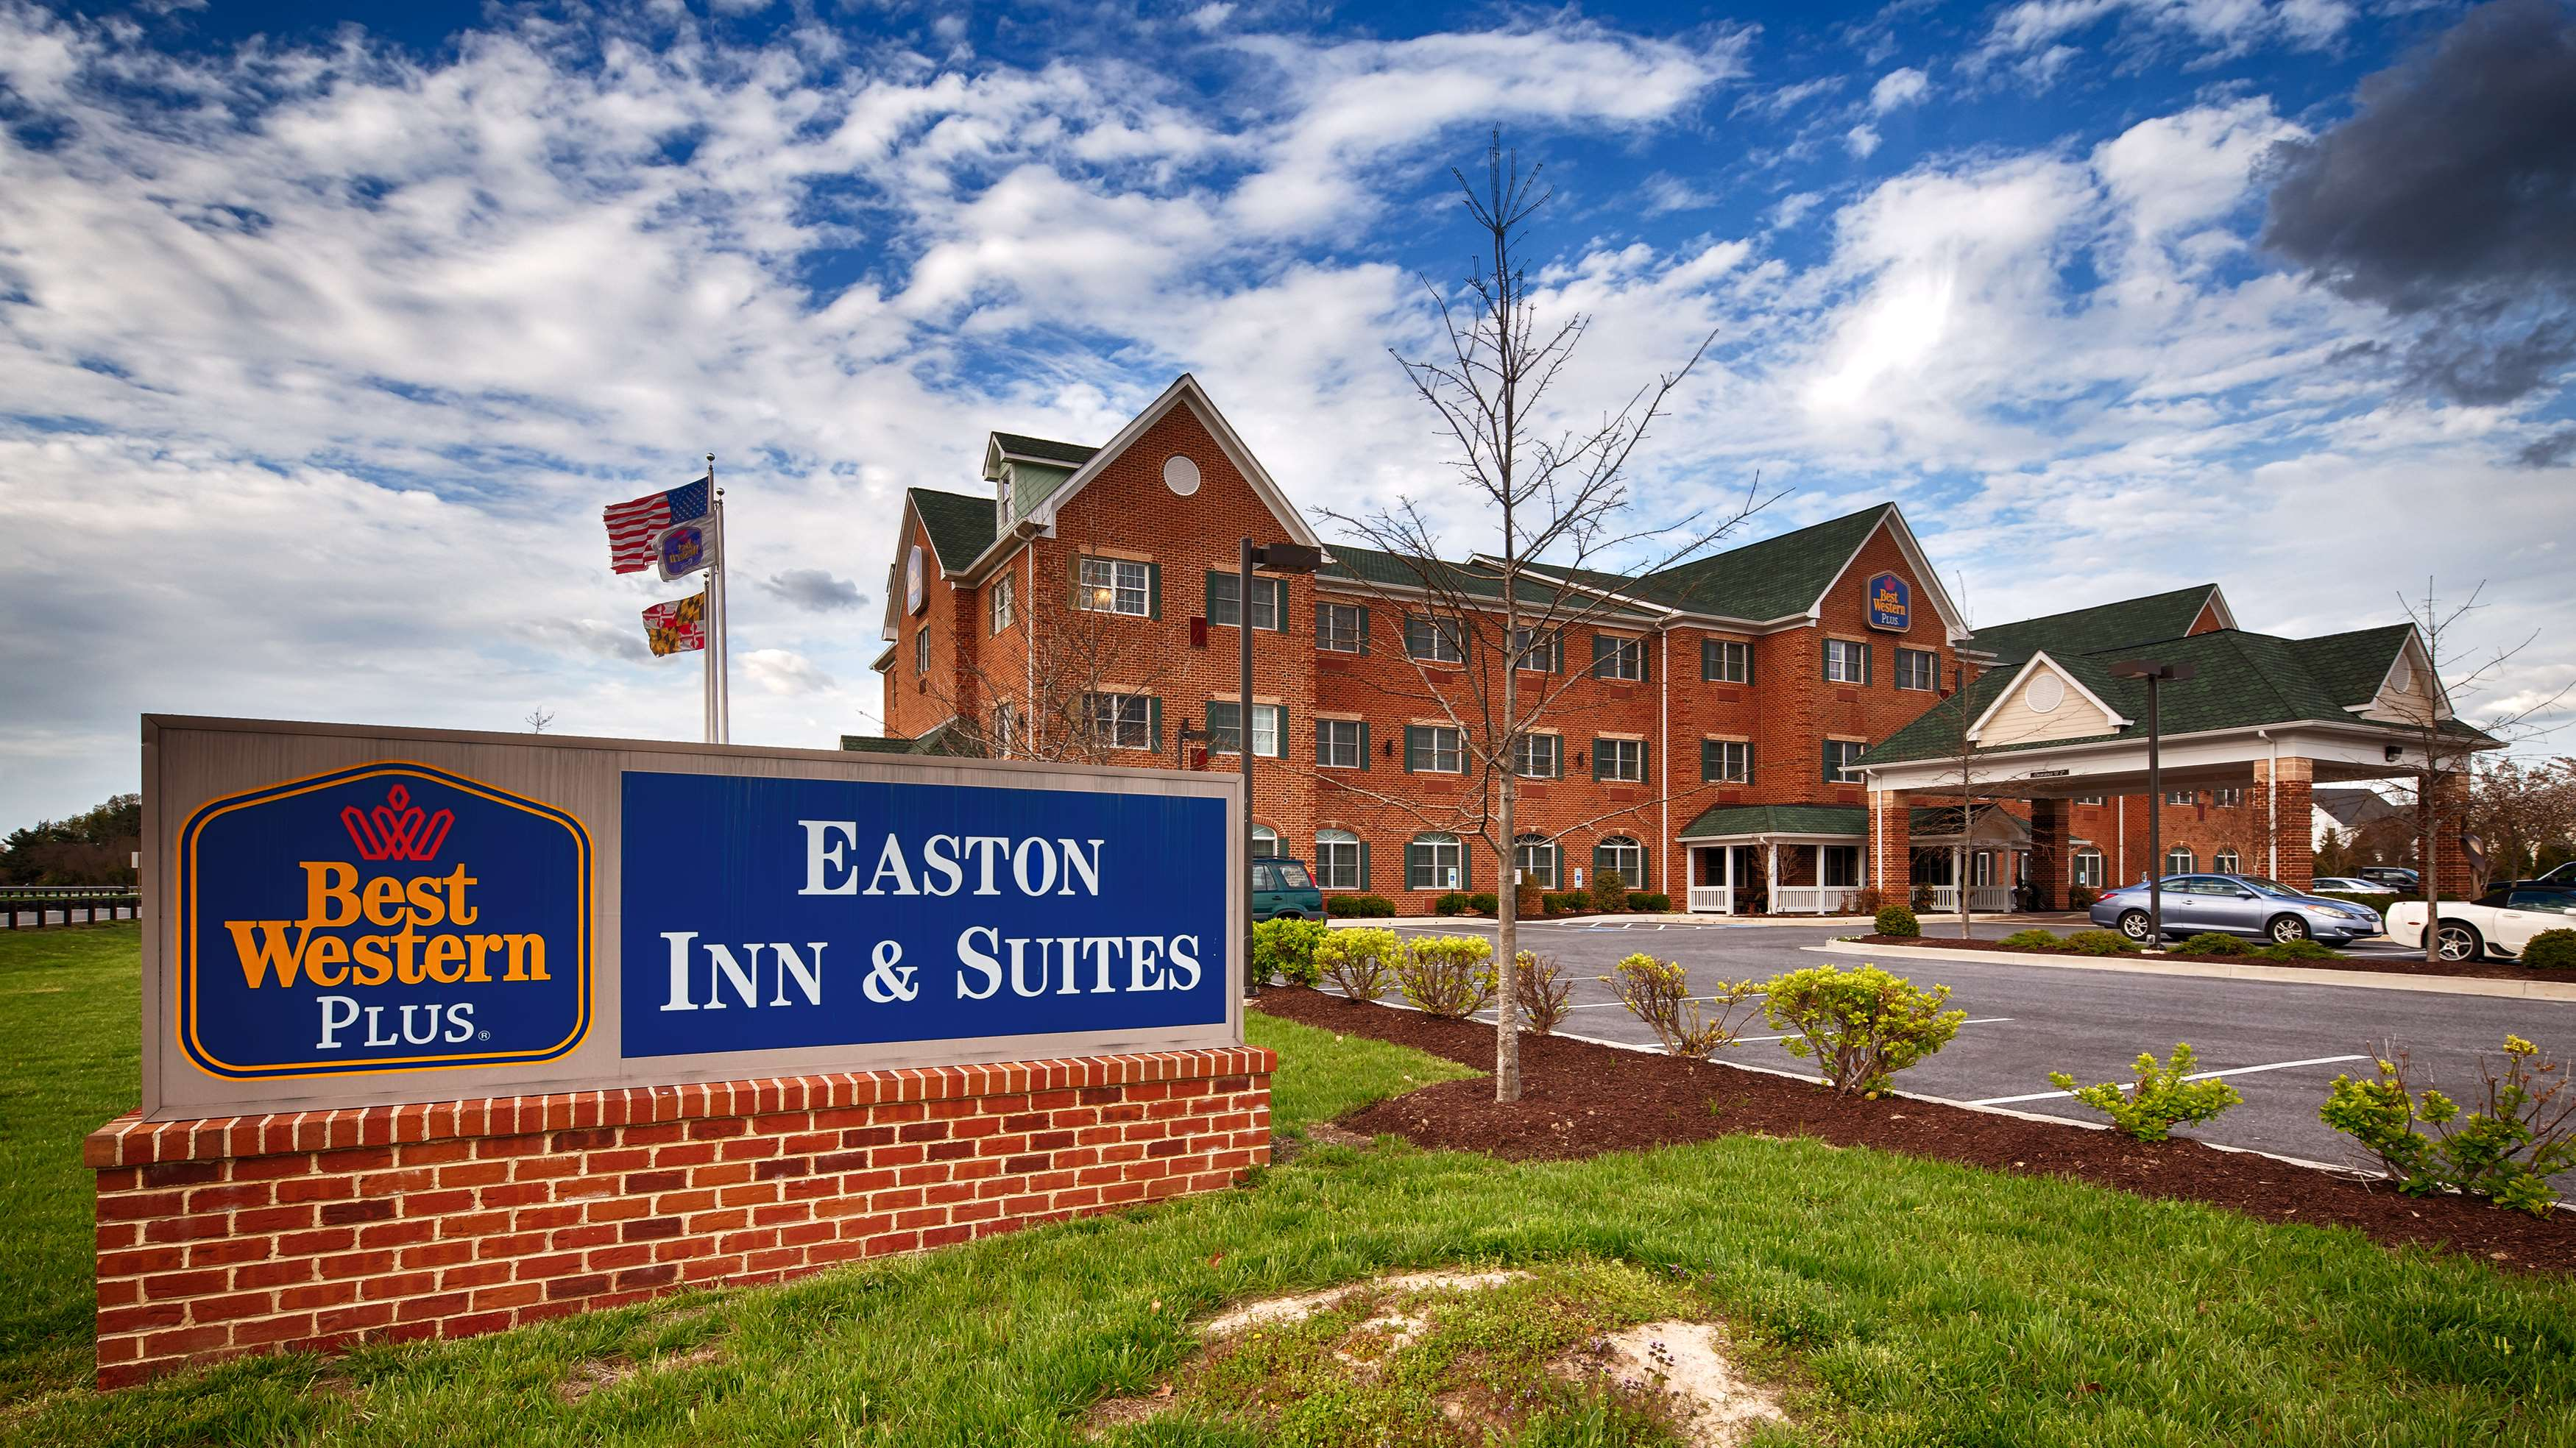 Easton Promise Bed And Breakfast